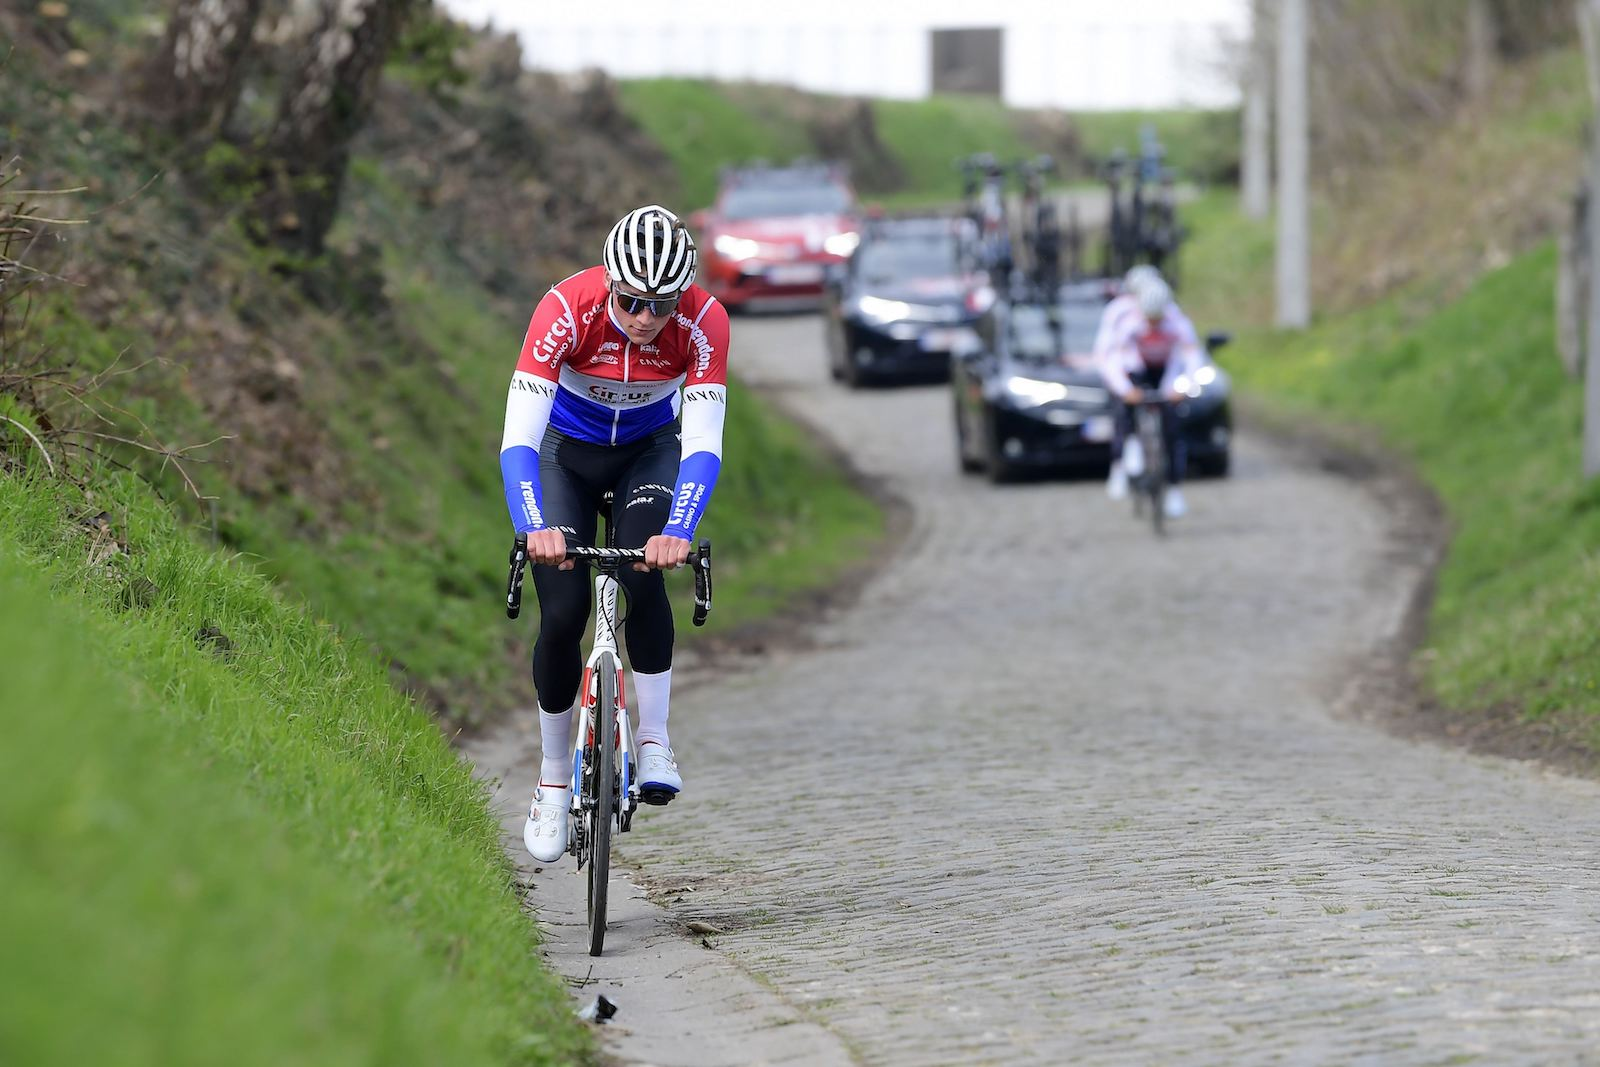 van der poel back on bike uci mulls